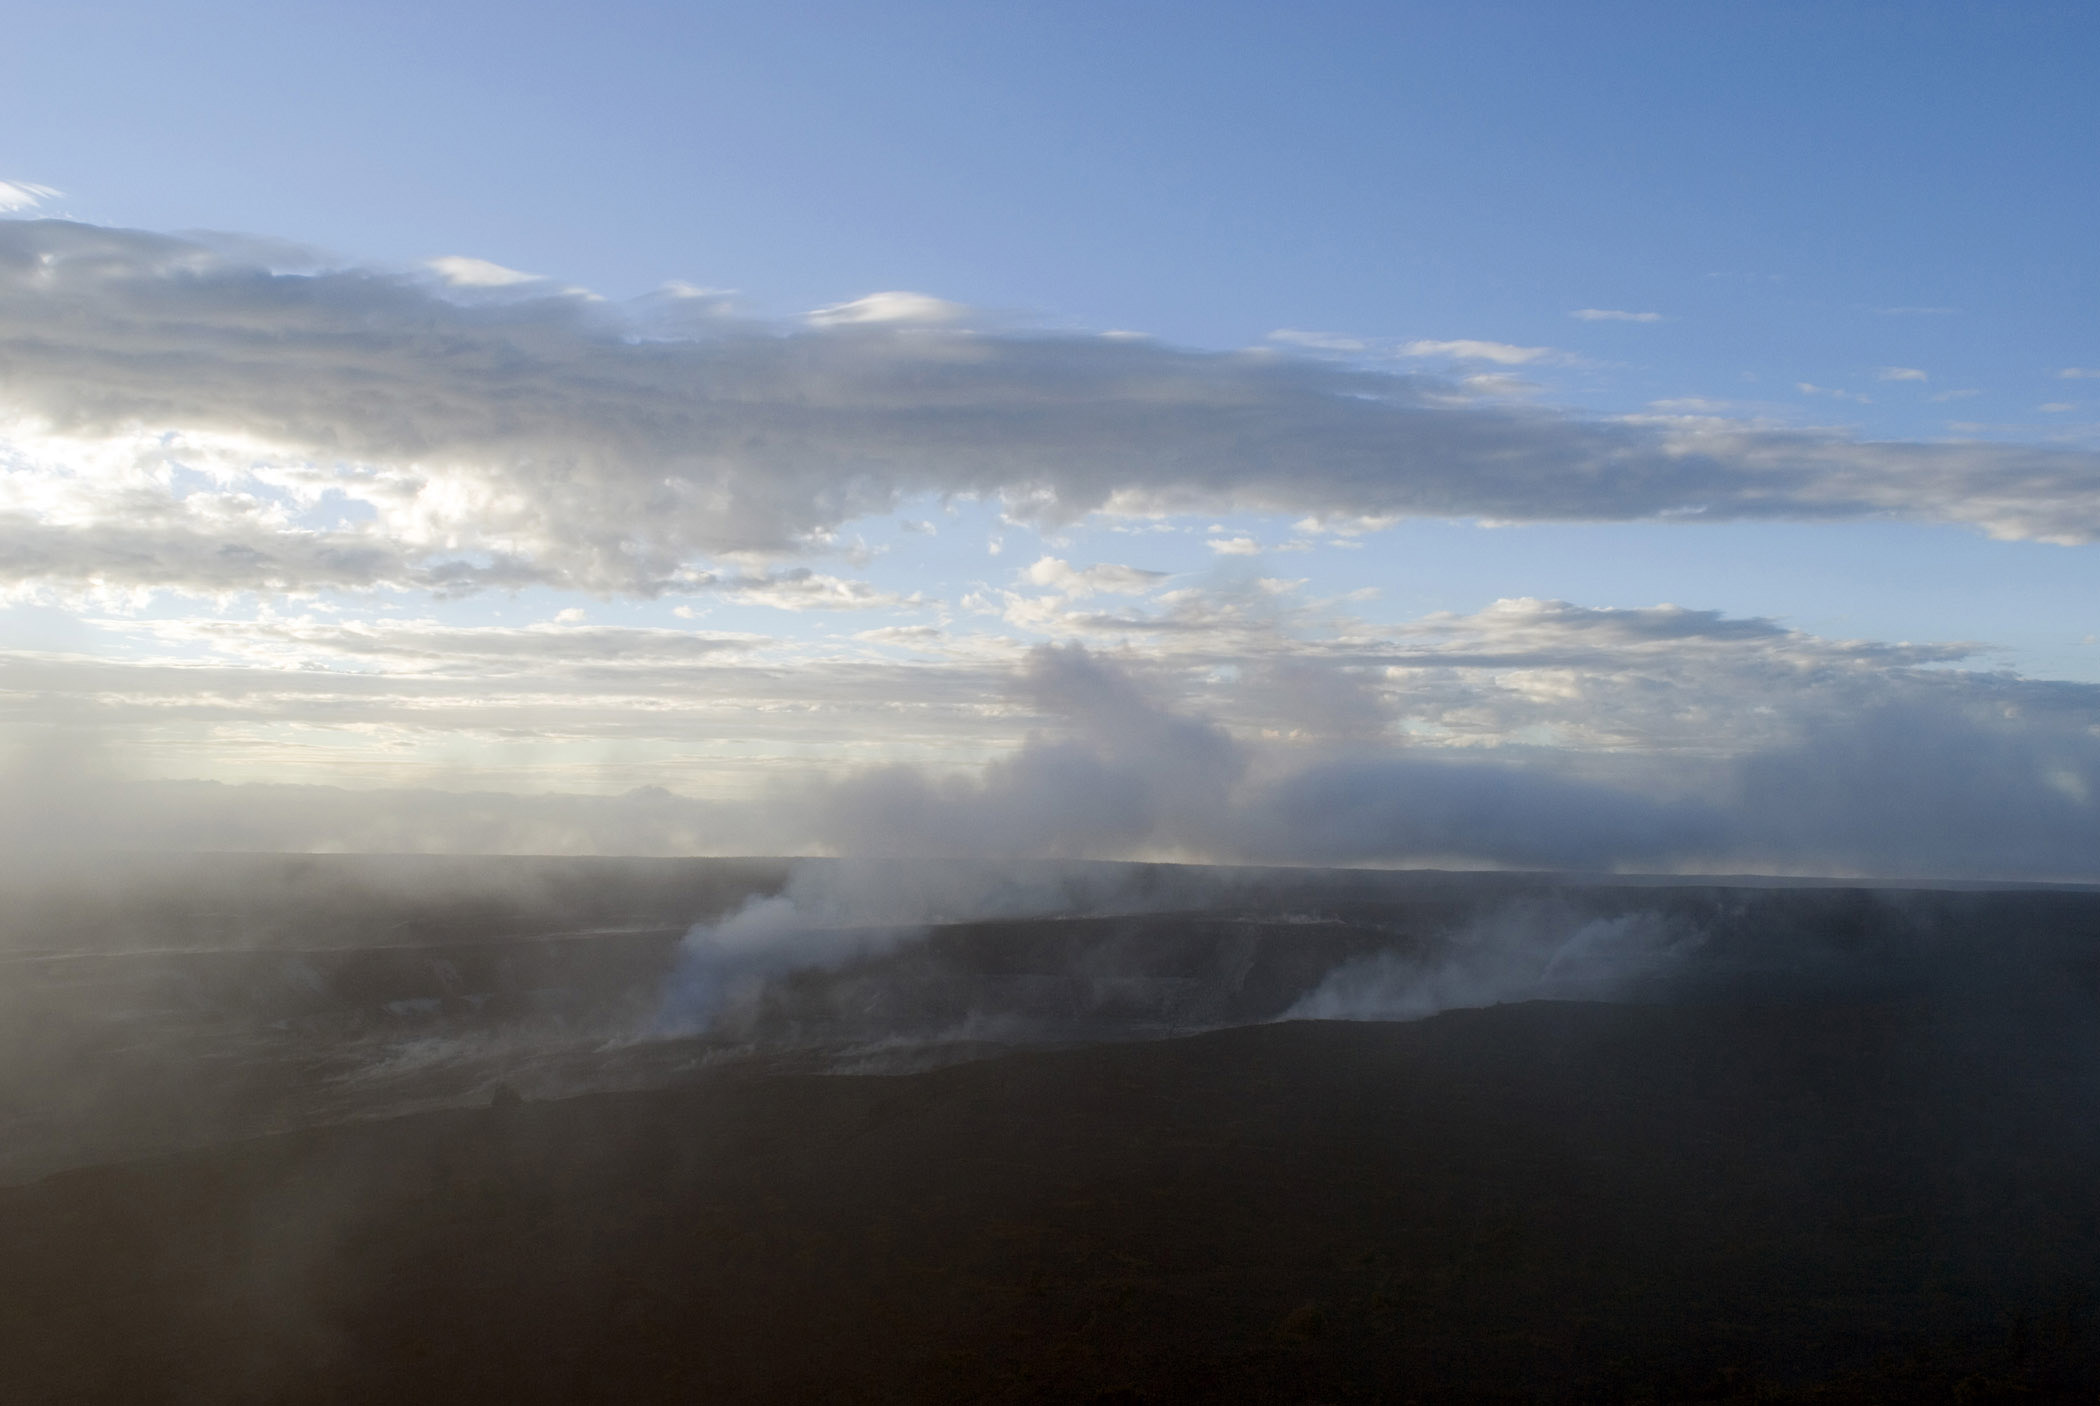 Overview of Steam Vents in Volcanoes National Park, Hawaii in Early Morning or Late Afternoon Sunlight